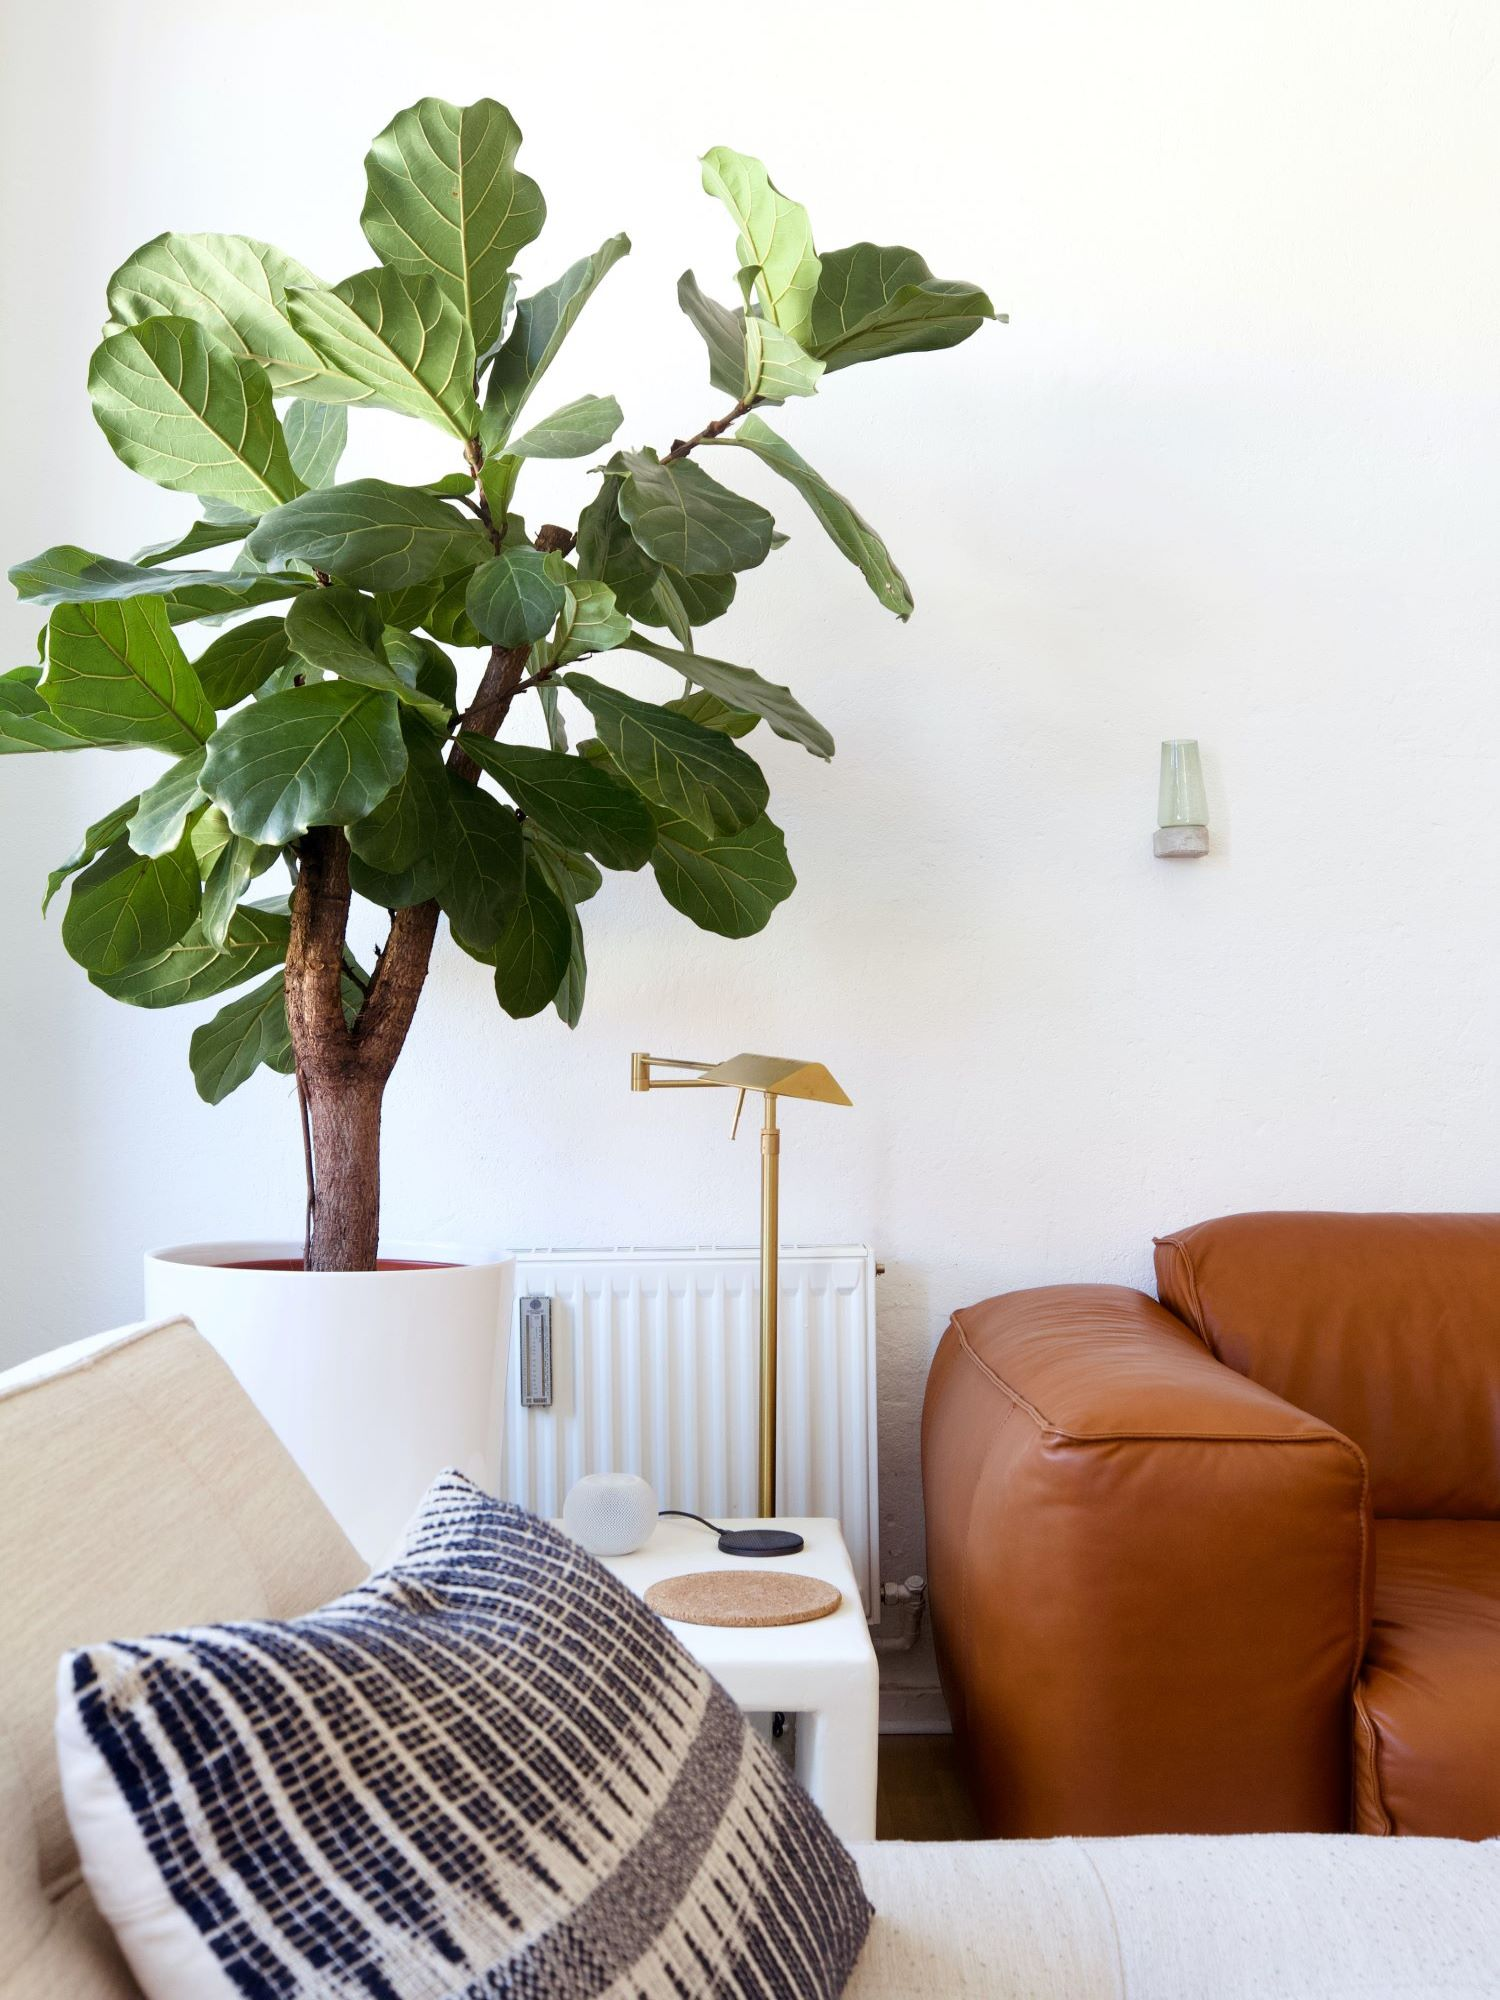 coastal style guide - indoor plant styling